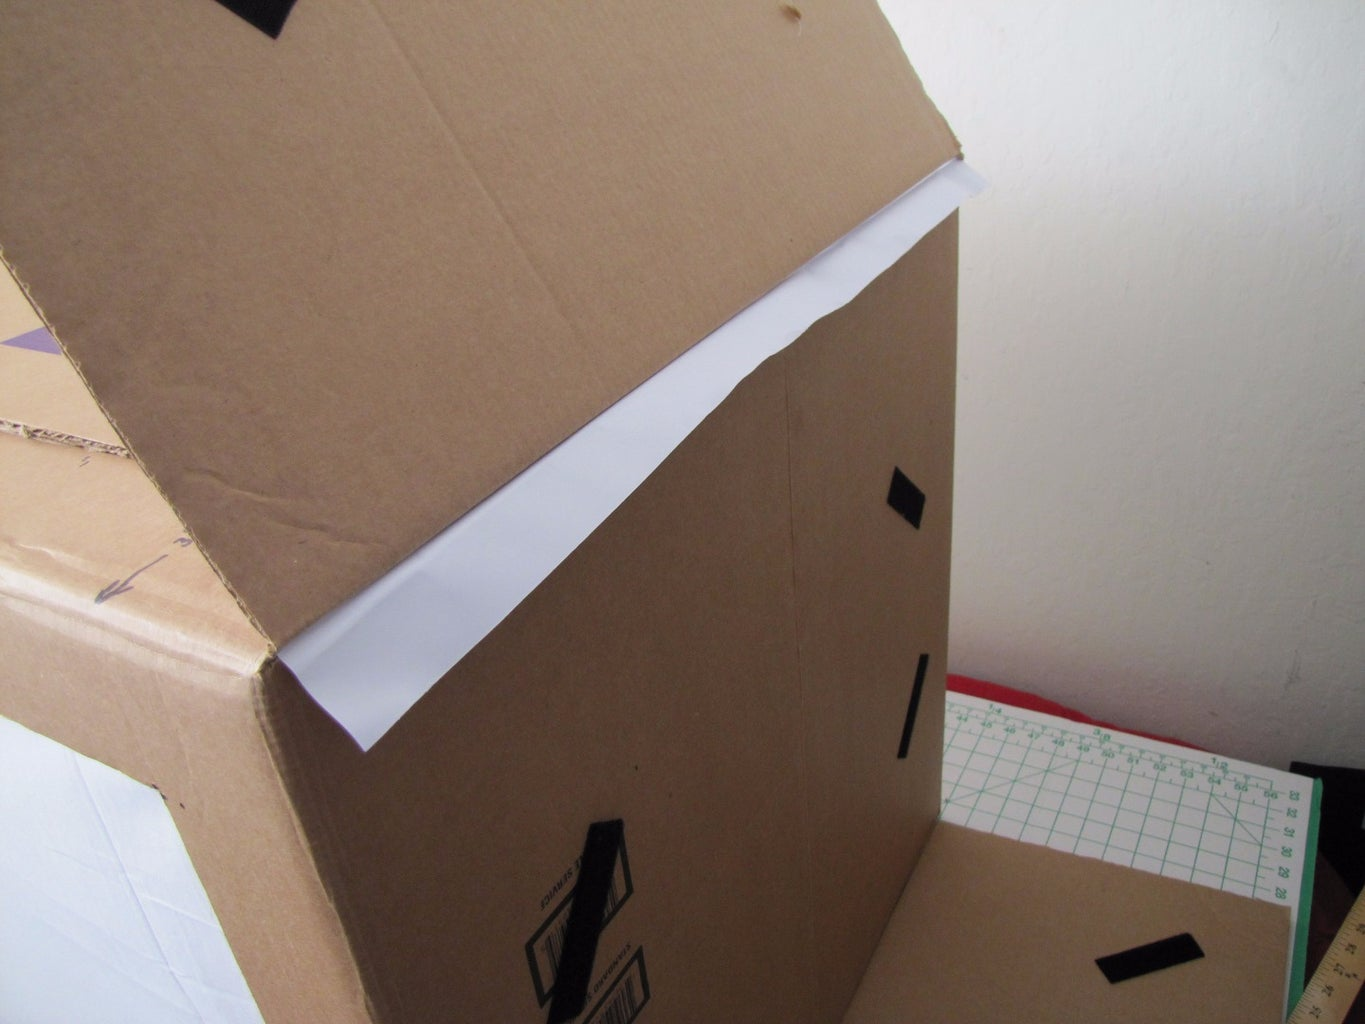 Mount the Background Sheet Inside the Box